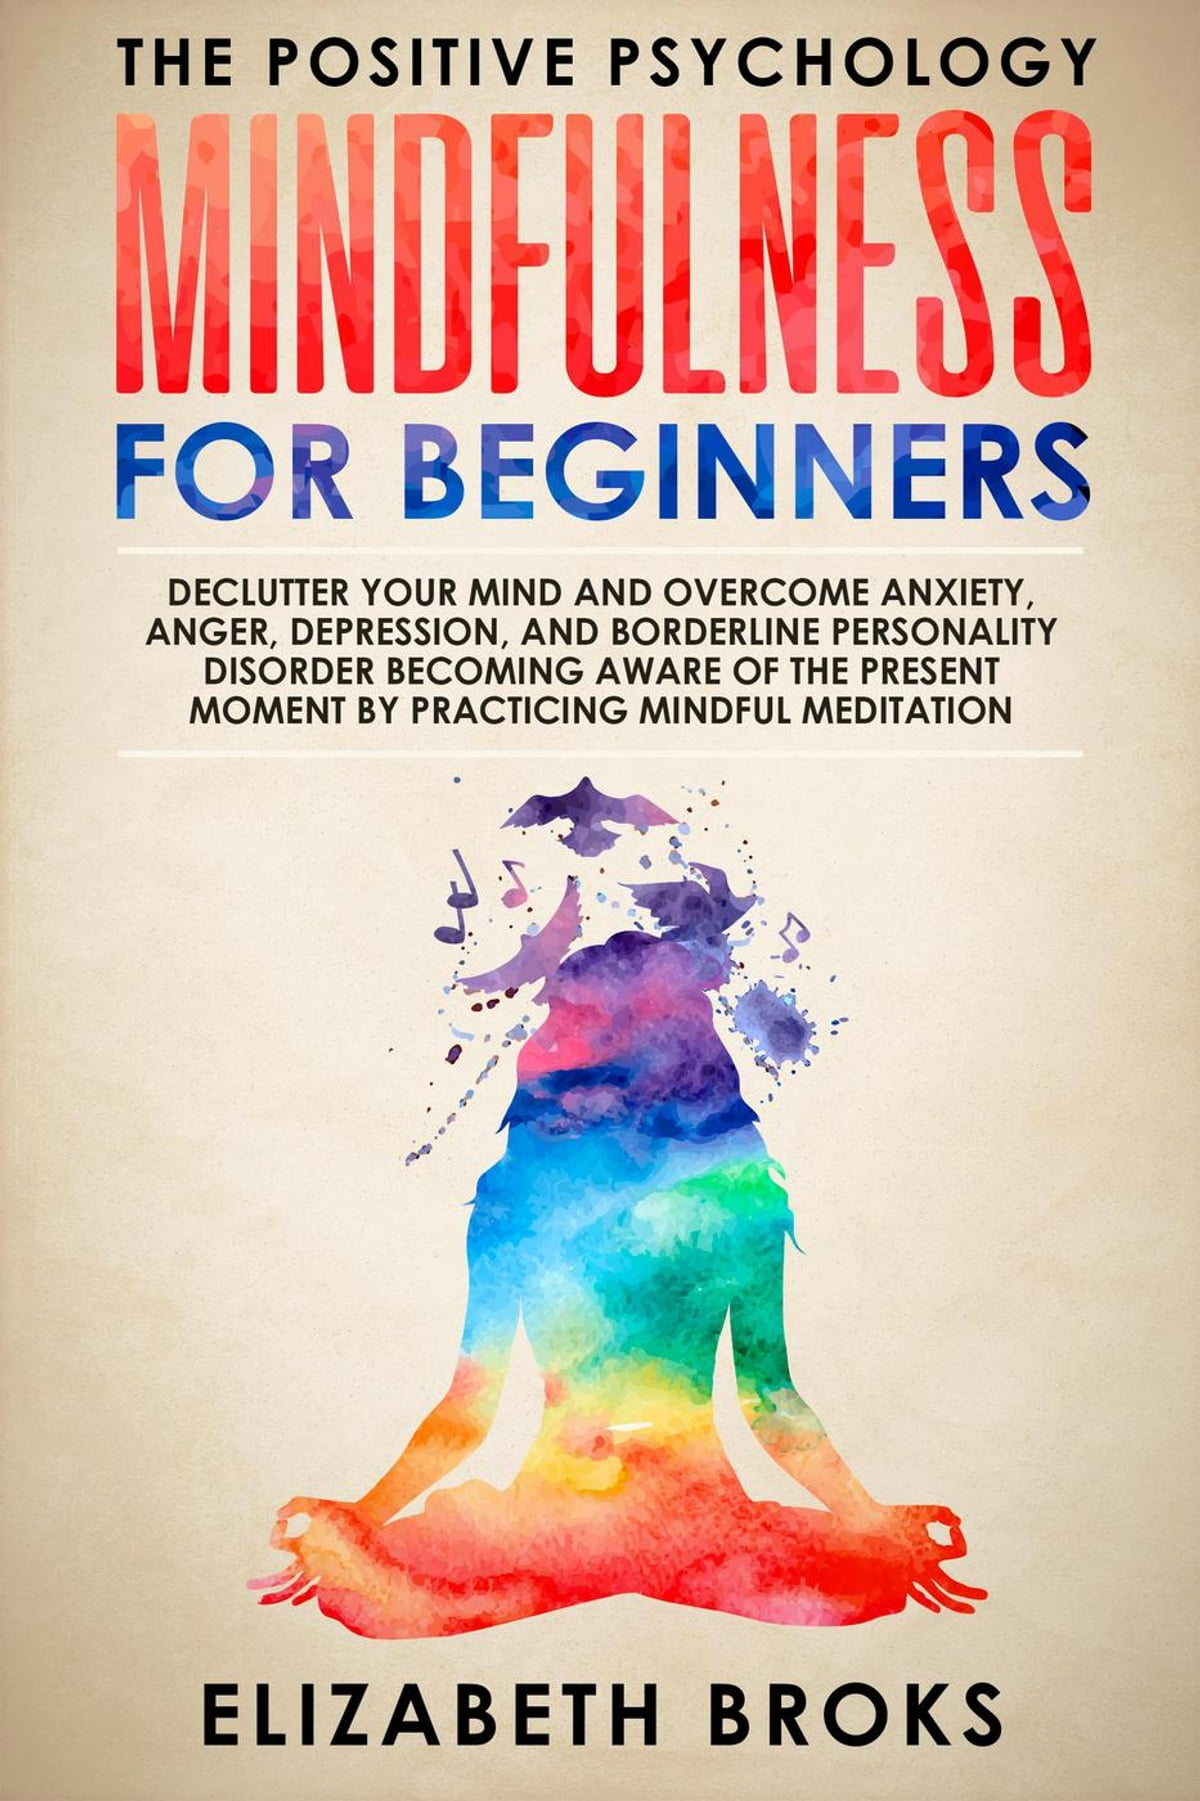 Mindfulness For Beginners Declutter Your Mind And Overcome Anxiety Anger Depression And Borderline Personality Disorder Becoming Aware Of The Present Moment By Practicing Mindful Meditation Ebook By Elizabeth Broks 9781393772330